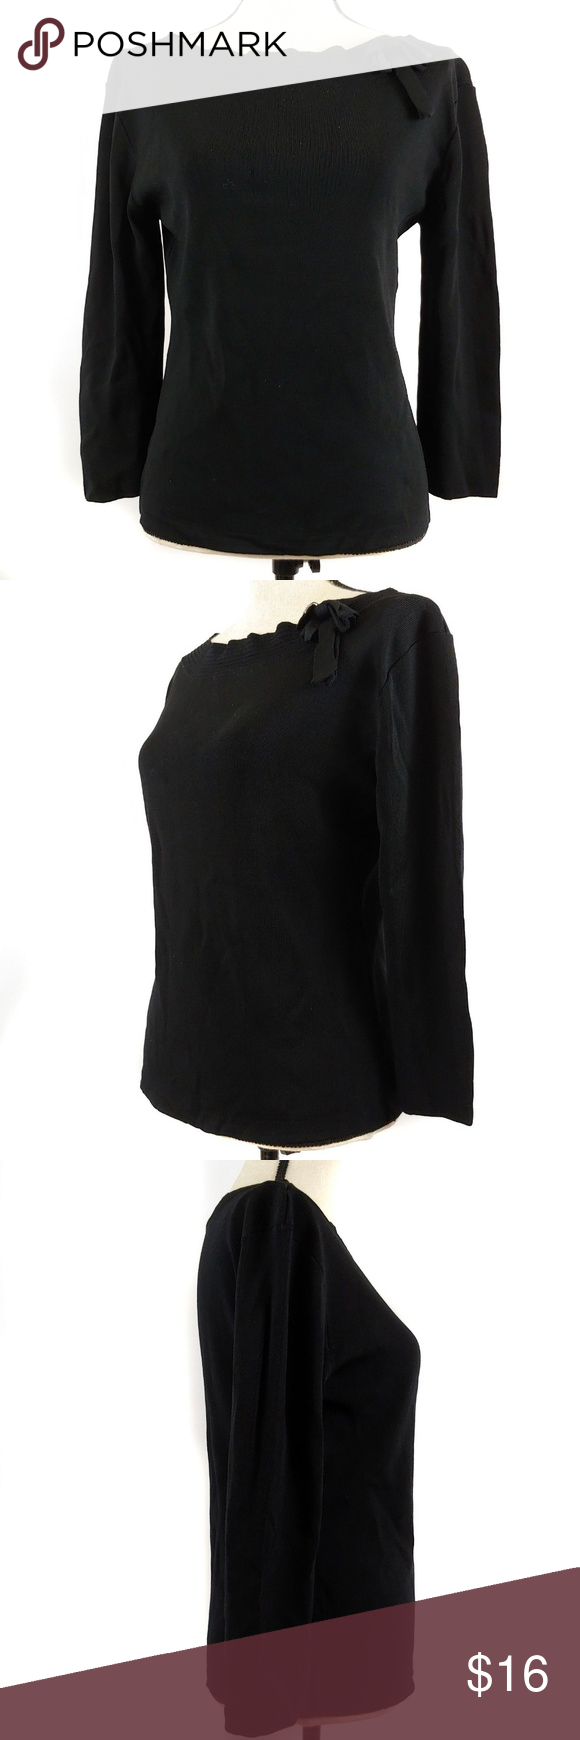 finity top large black 3 4 sleeves bow stretch in 2018 my posh